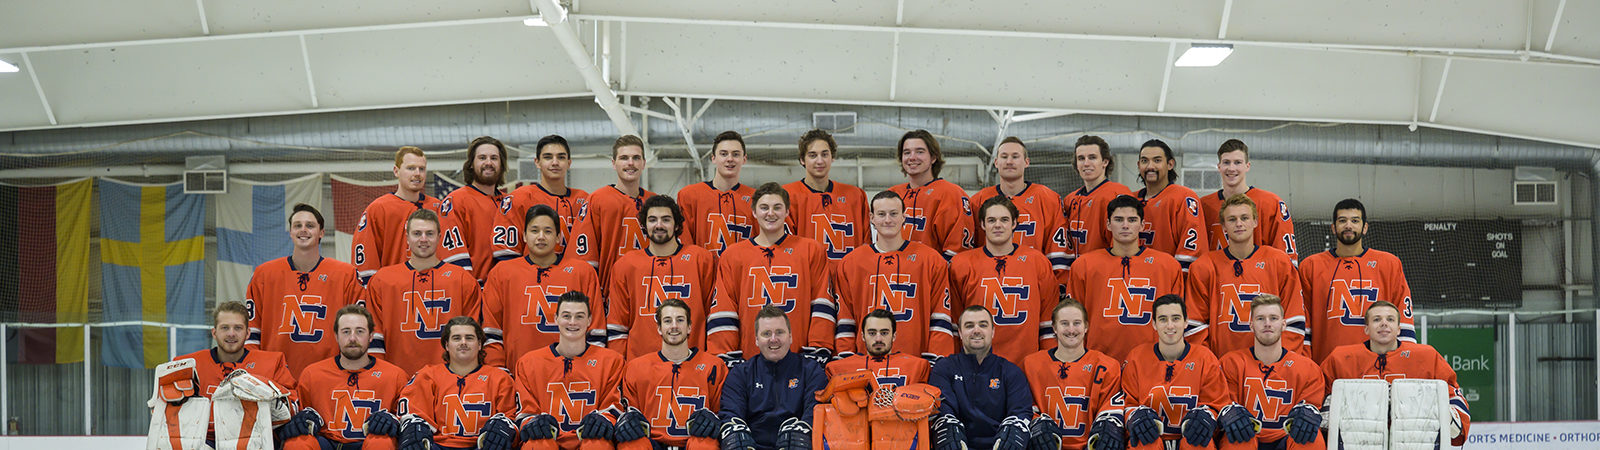 Northland College Men's 2019 Hockey Team